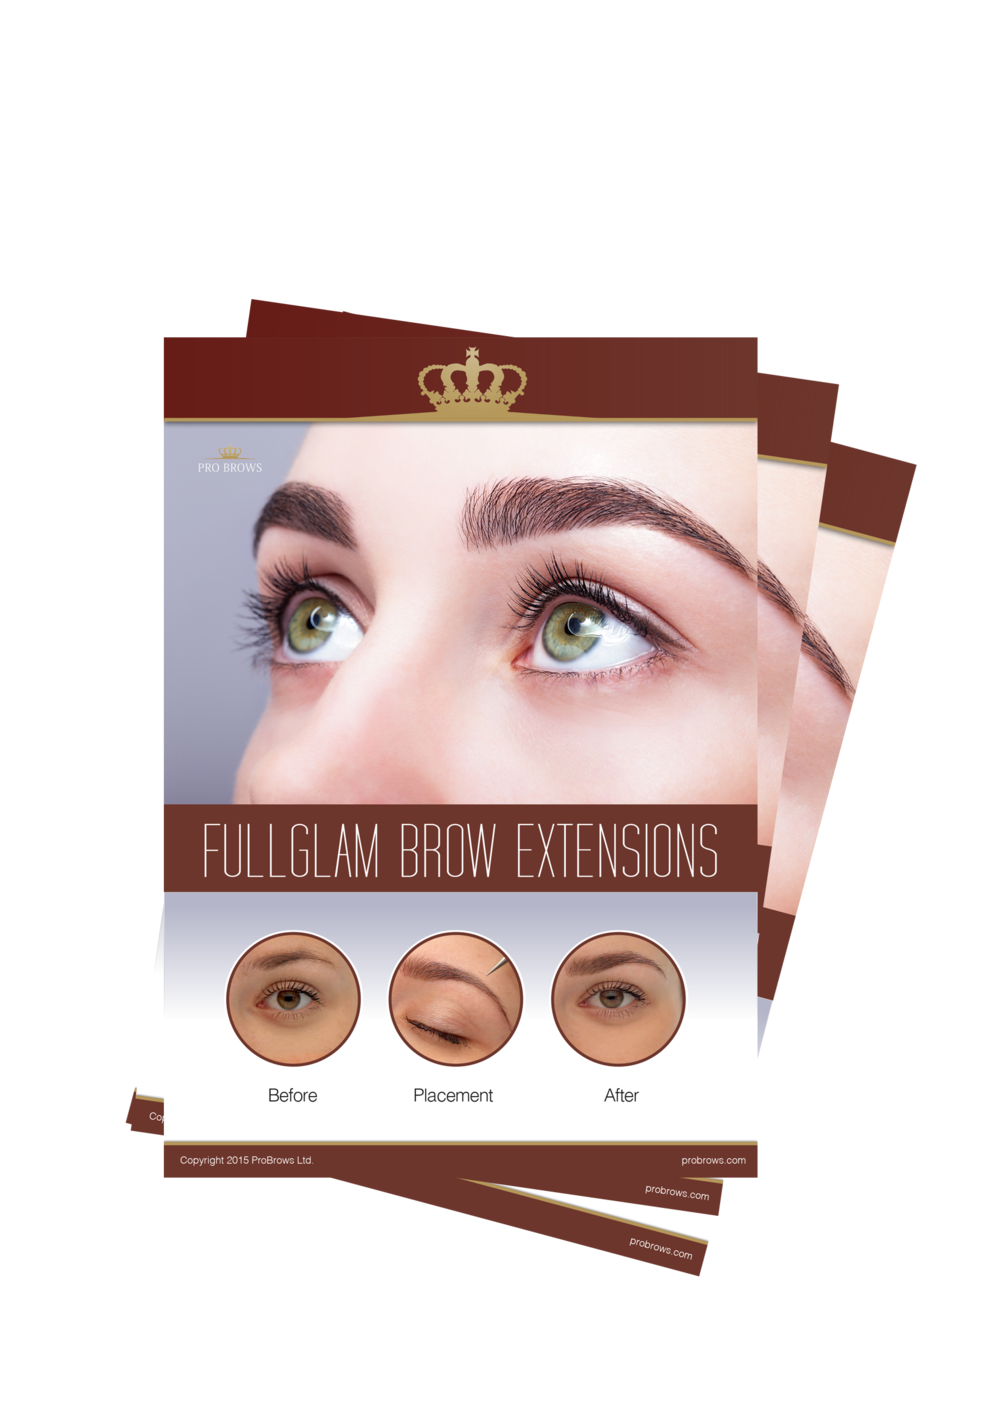 FullGlam Brow Extensions Samples.  To enable you to show your clients what will their new brows look like with FullGlam Extensions you are welcome to use these materials.